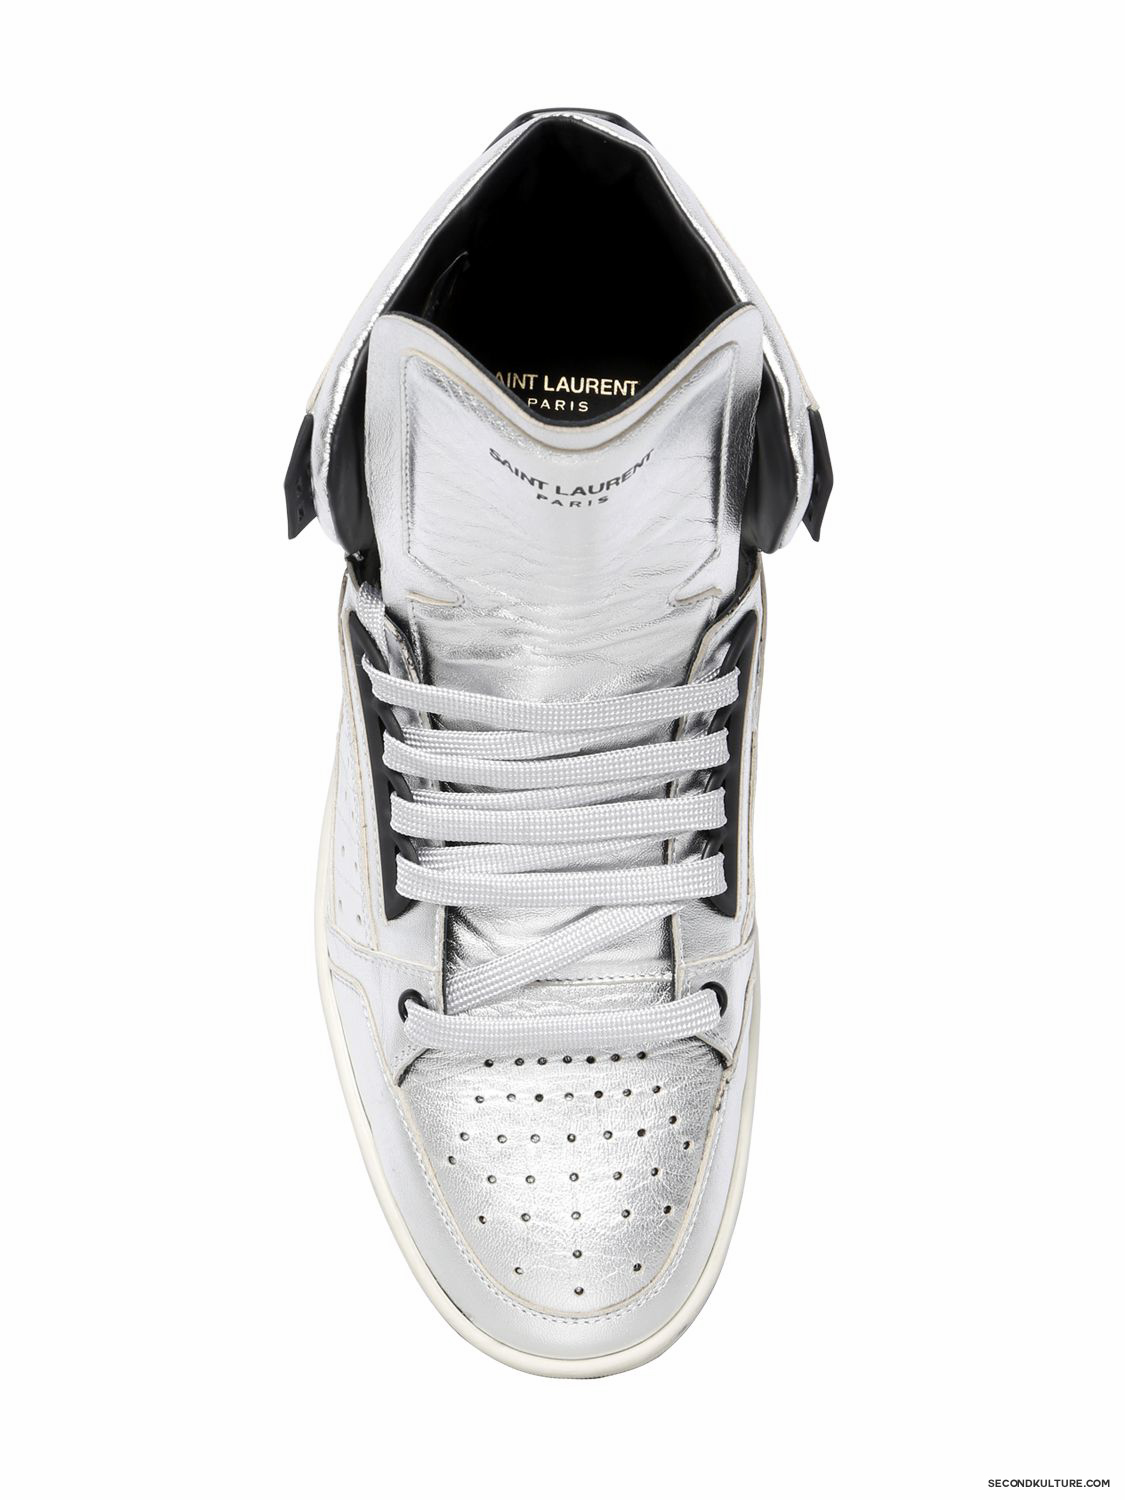 Saint-Laurent-Silver-Lame-Leather-High-Top-Sneakers-Fall-Winter-2015-2